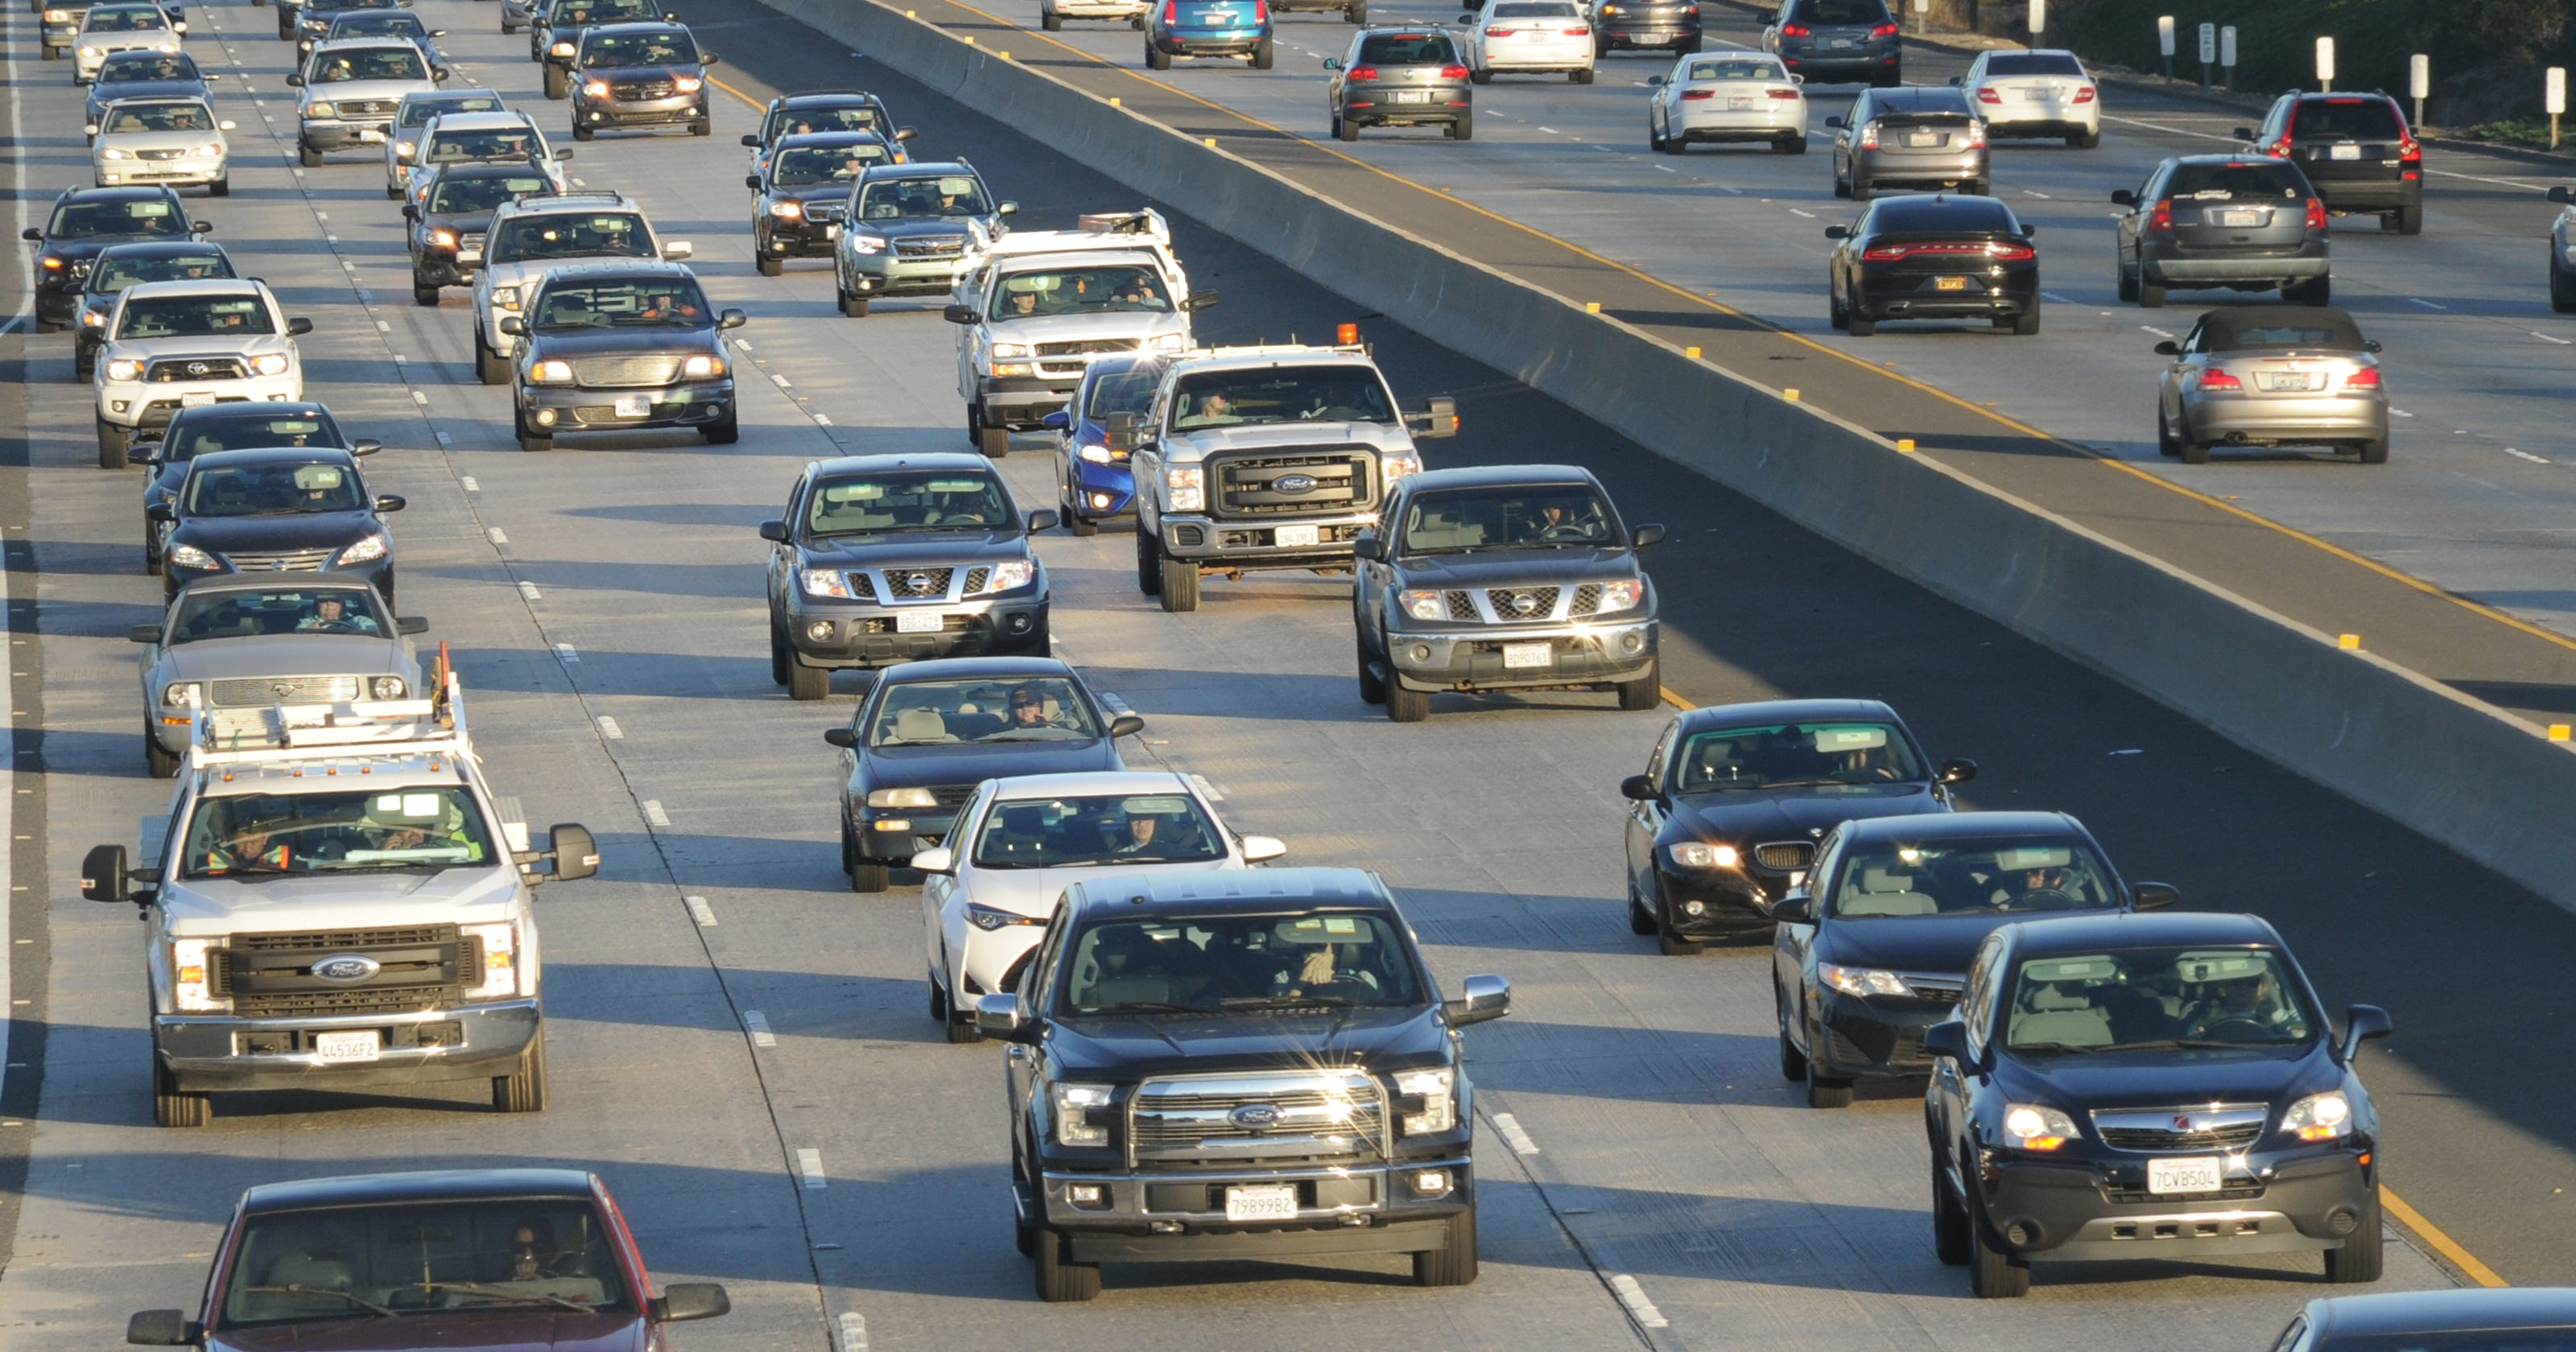 Highways 101 and 33 being upgraded in Ventura County